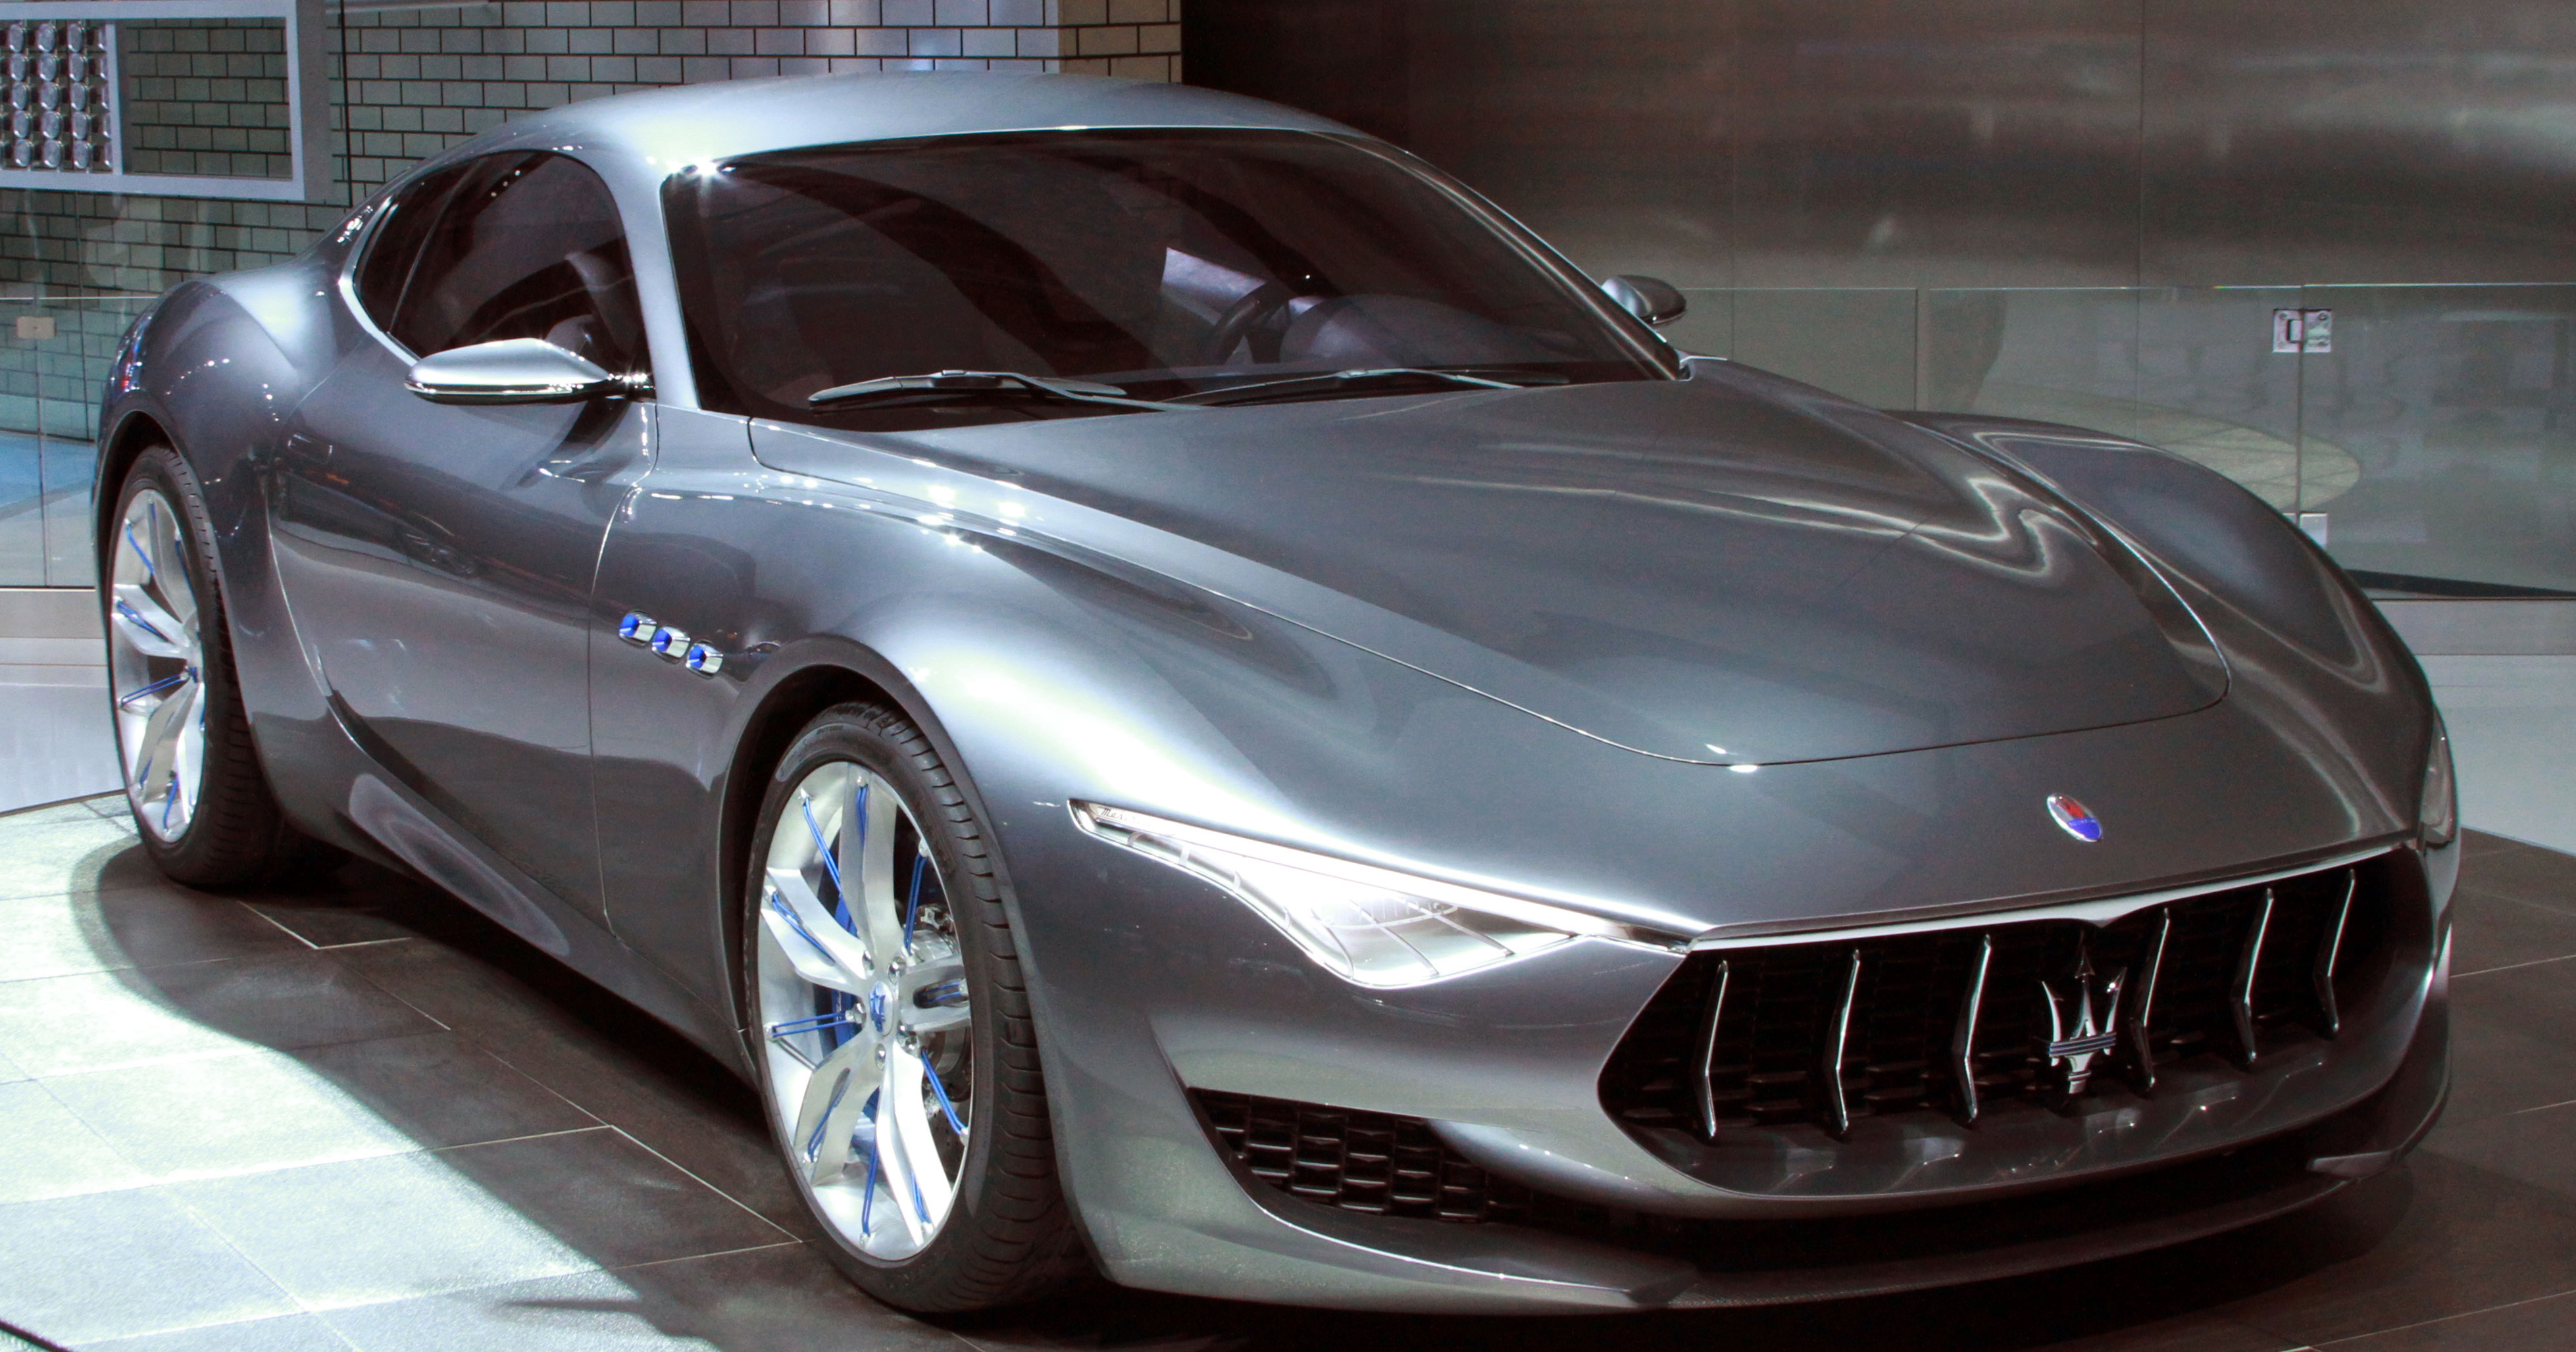 maserati alfieri price images galleries with a bite. Black Bedroom Furniture Sets. Home Design Ideas